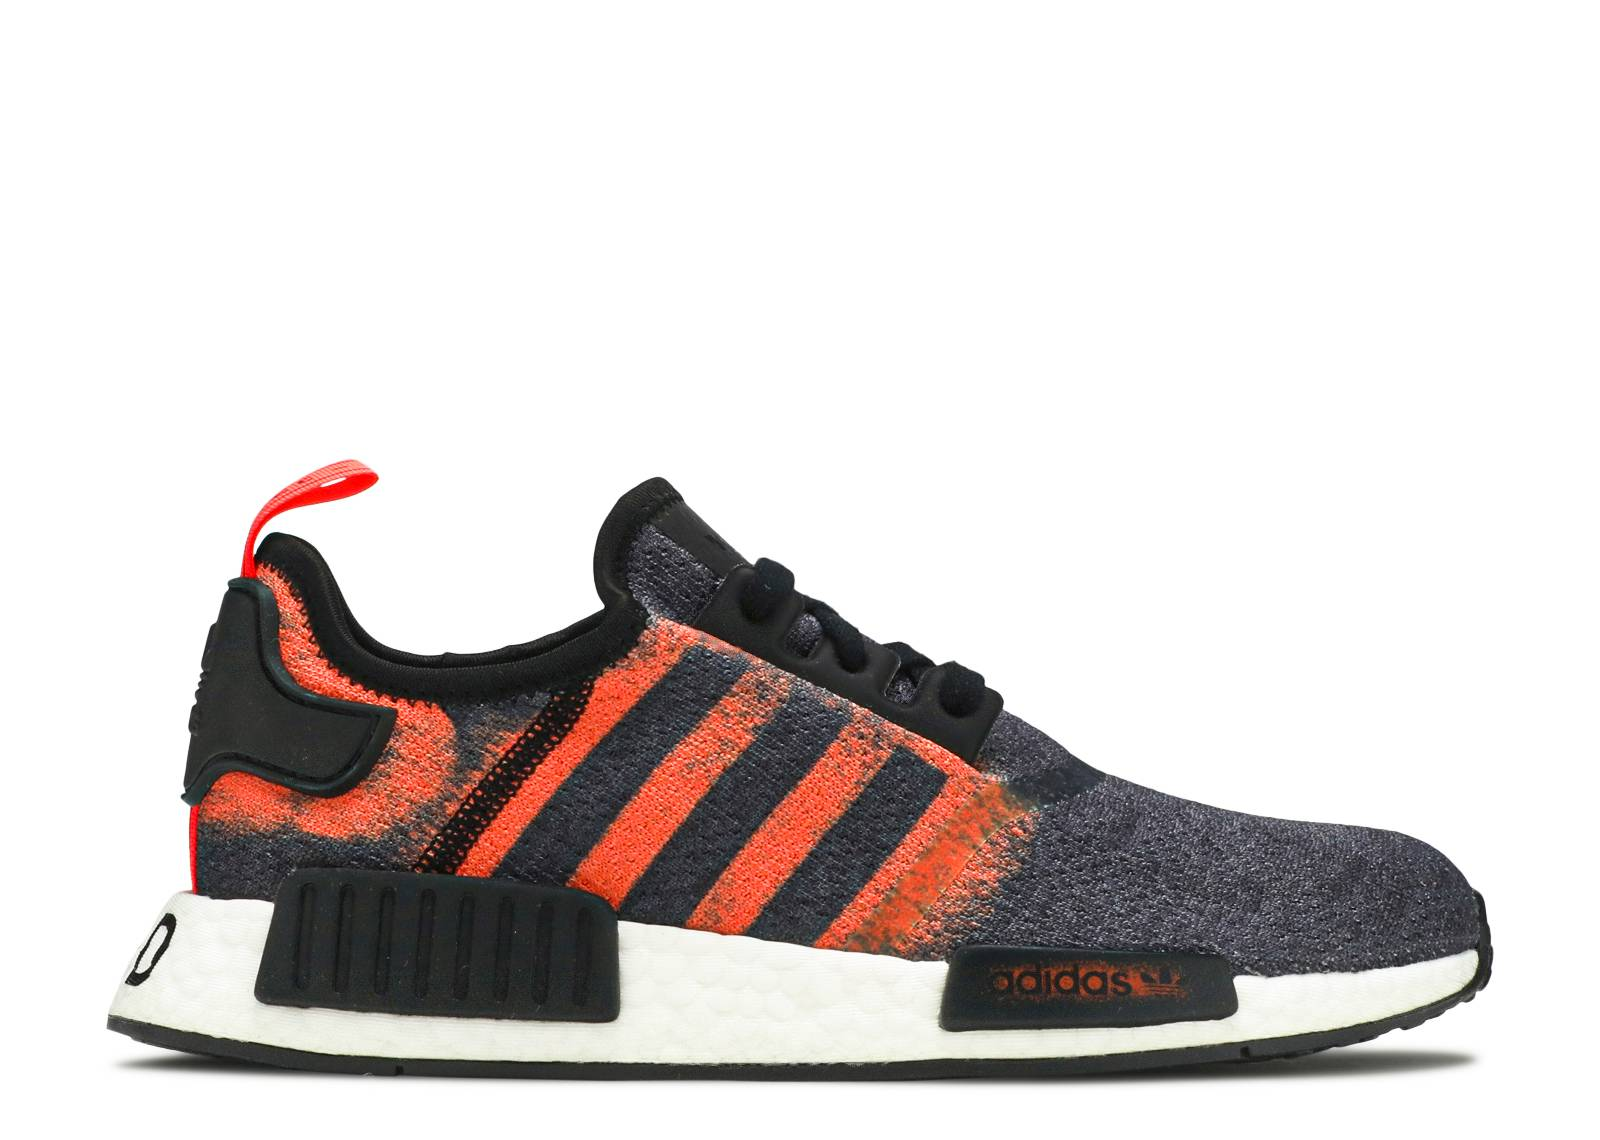 6119f43bd Adidas NMD - adidas Originals Men s   Women s Shoes